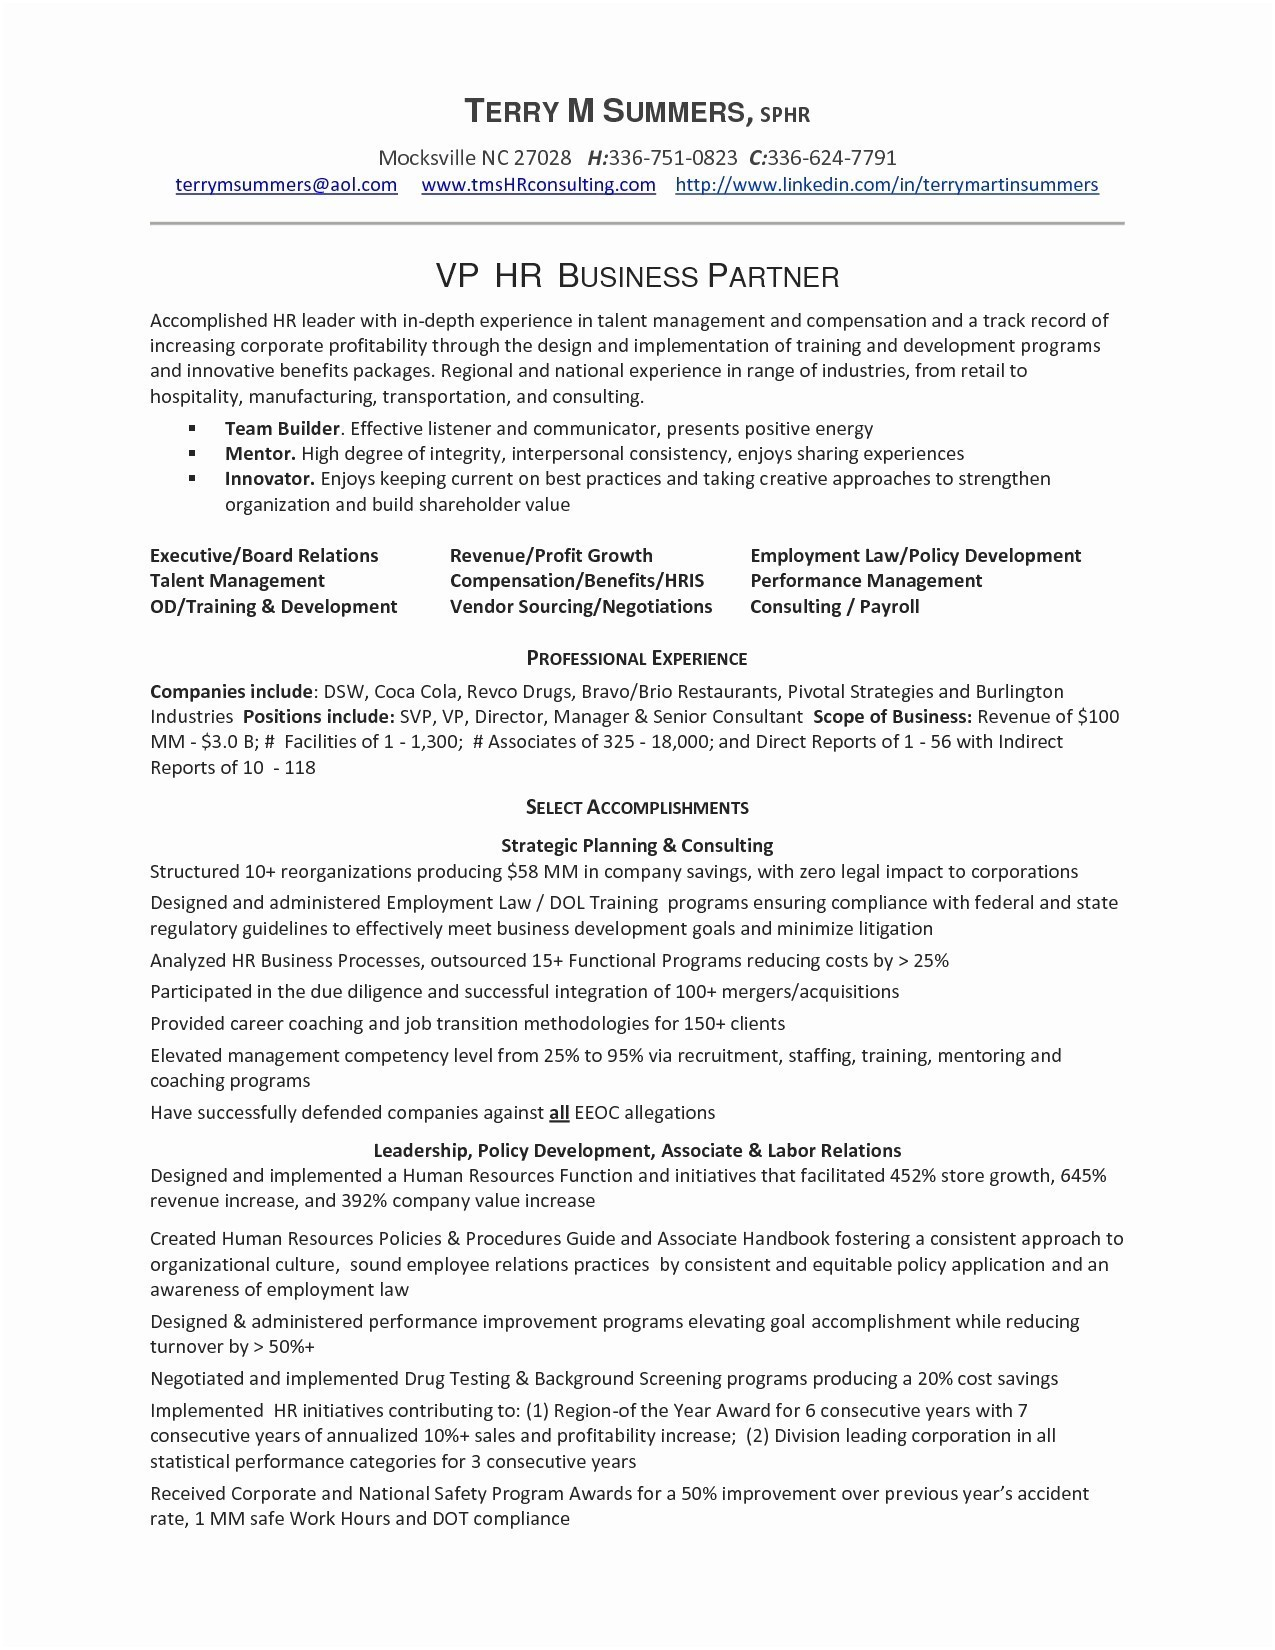 Business Plan Letter Template - How to Write A Business Proposal Letter Template Inspirationa Sales